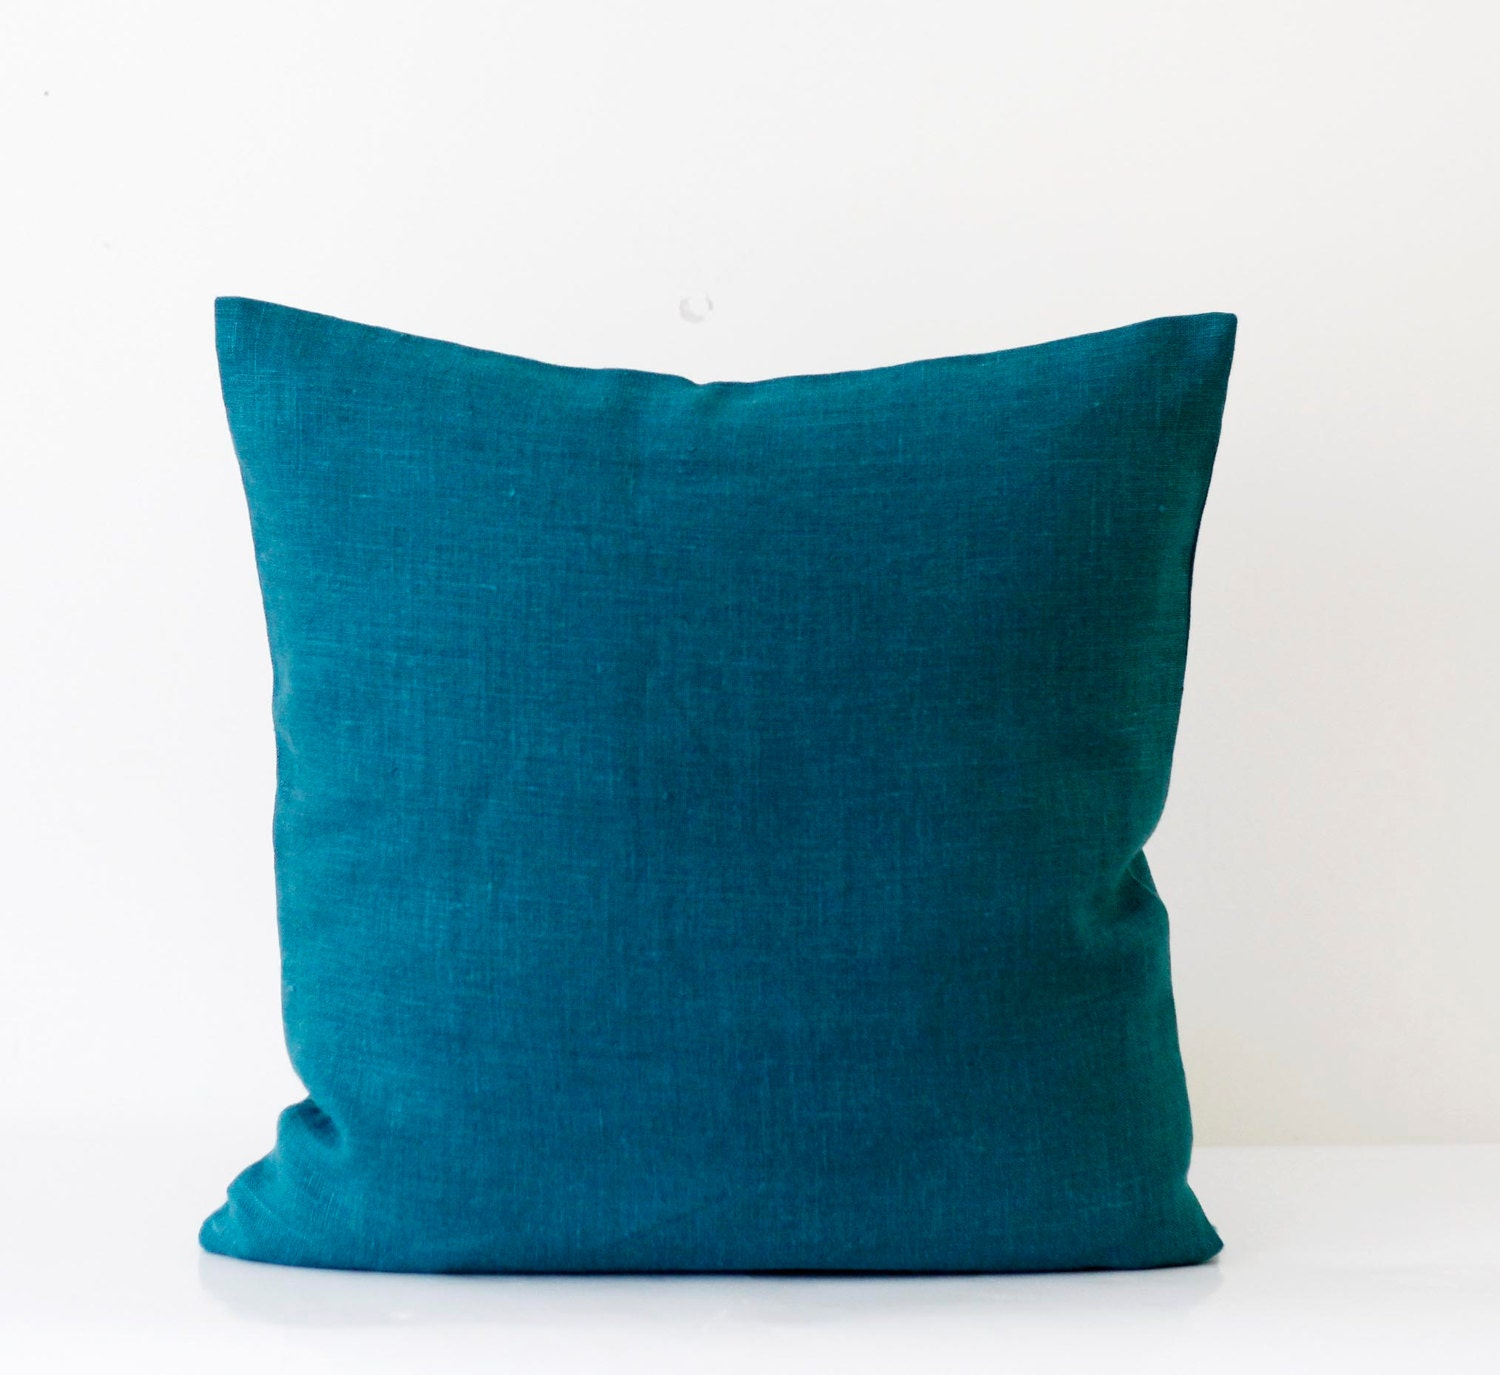 Teal Blue Throw Pillow : Teal blue pillow cover classic style decorative by pillowlink